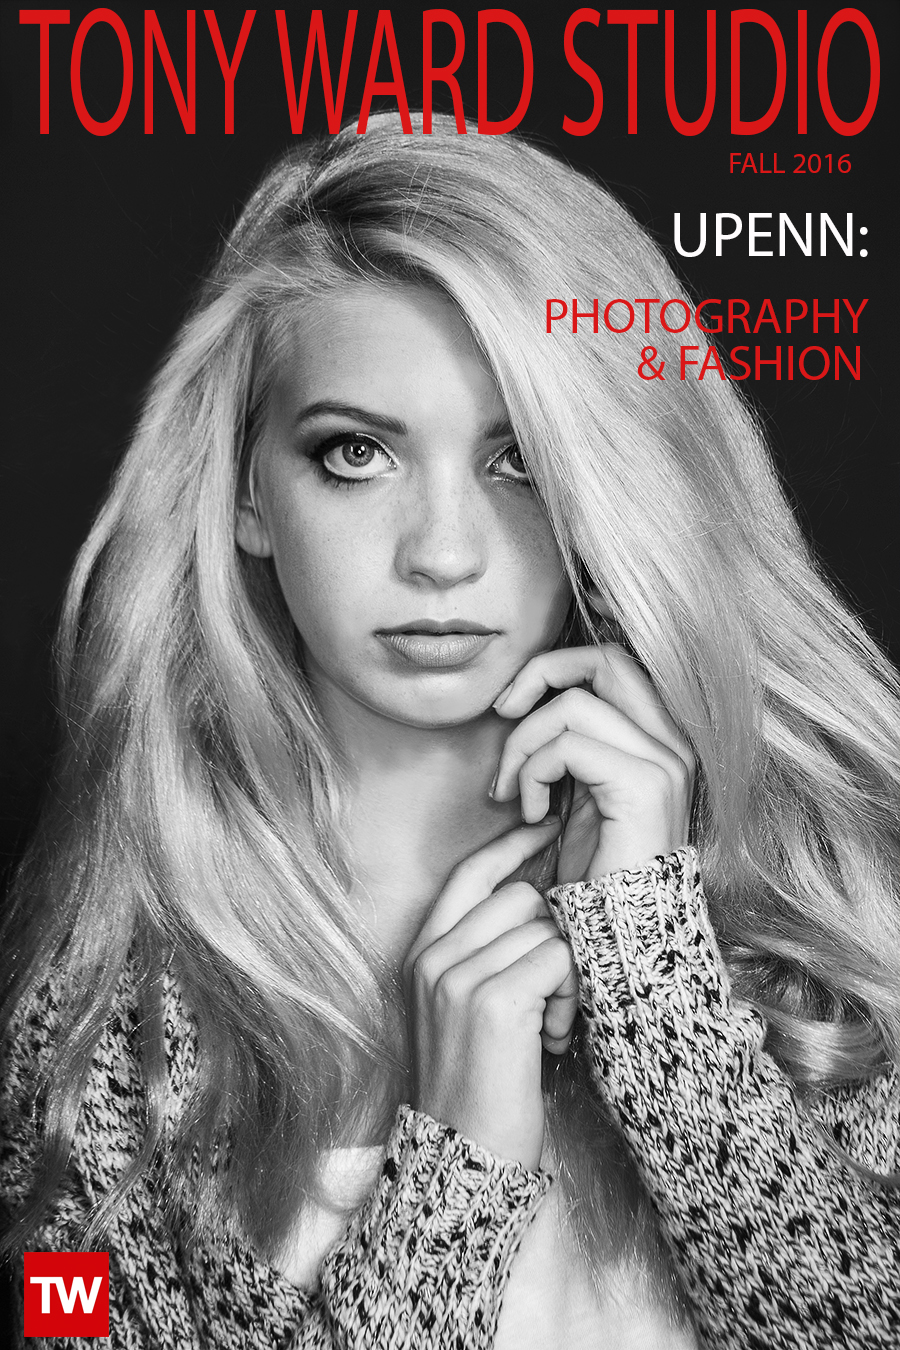 Tony_Ward_Photography_UPenn_fashion_class_Cailin_main_line_models_talent_blonds_jewelry_student_work